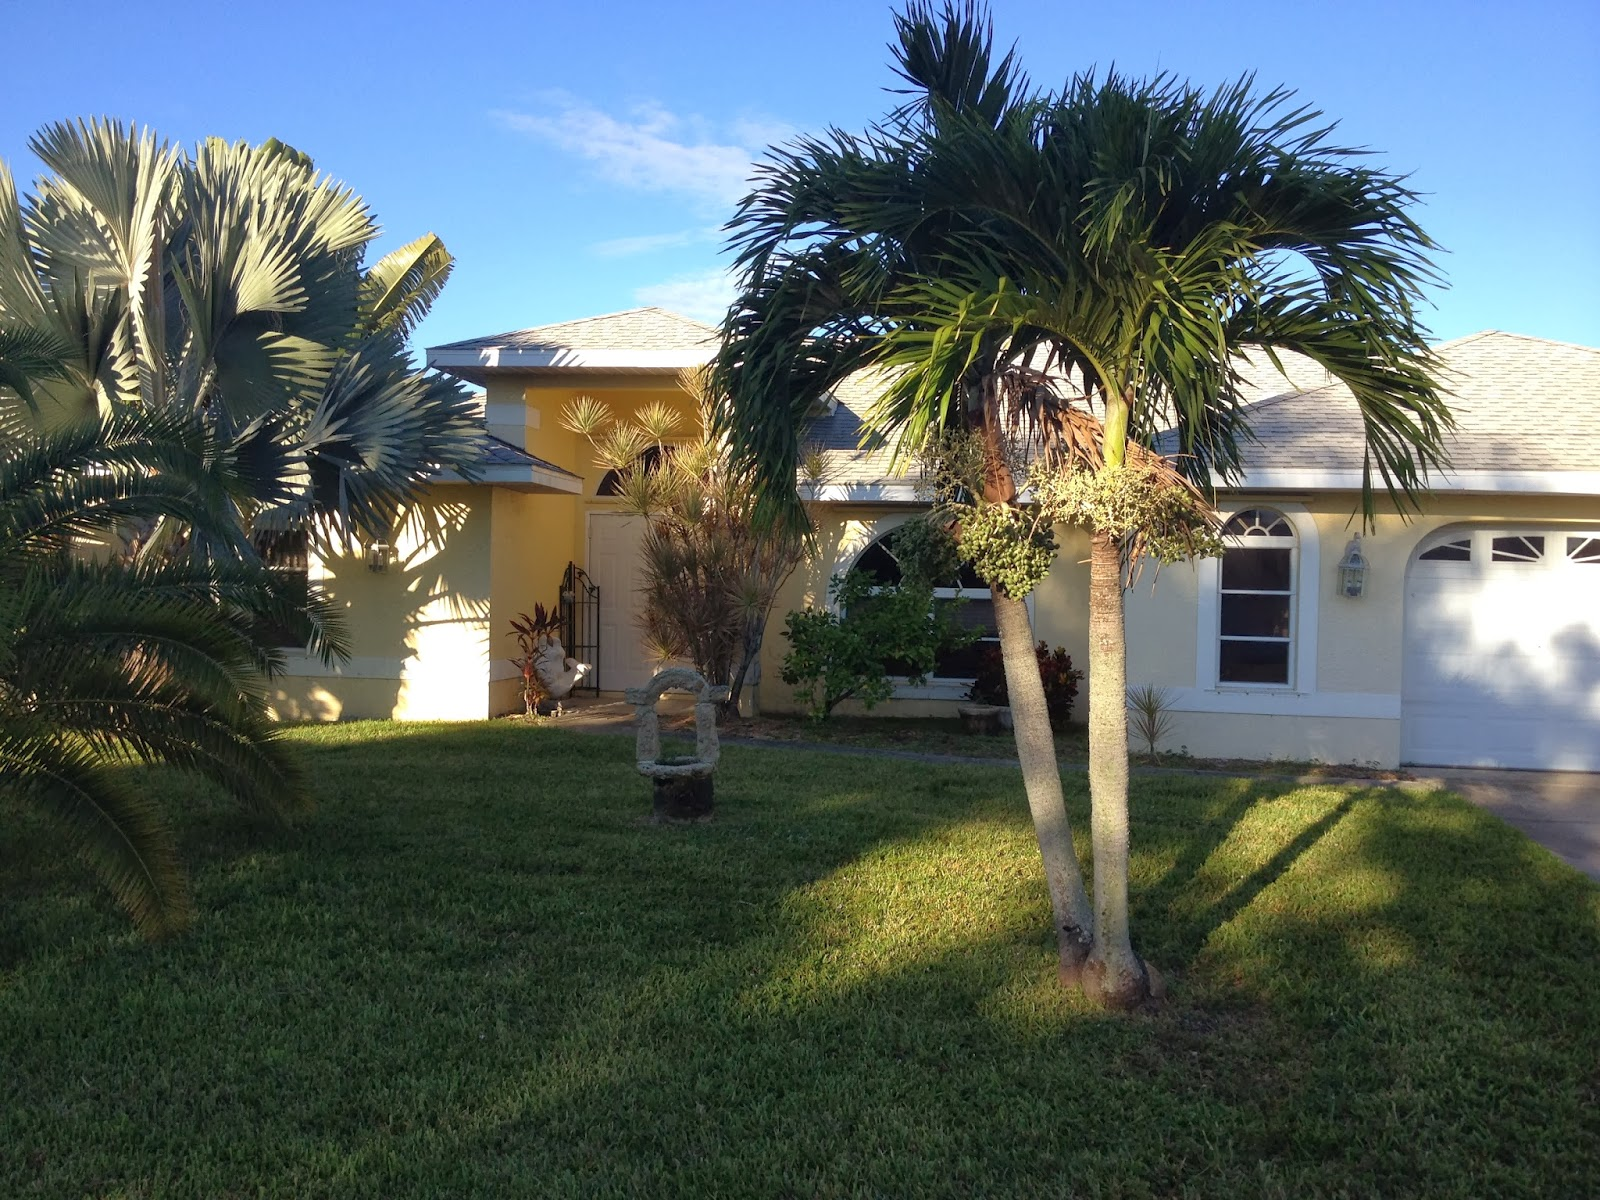 Le march immobilier a cape coral est solide floride for Acheter une maison en floride usa